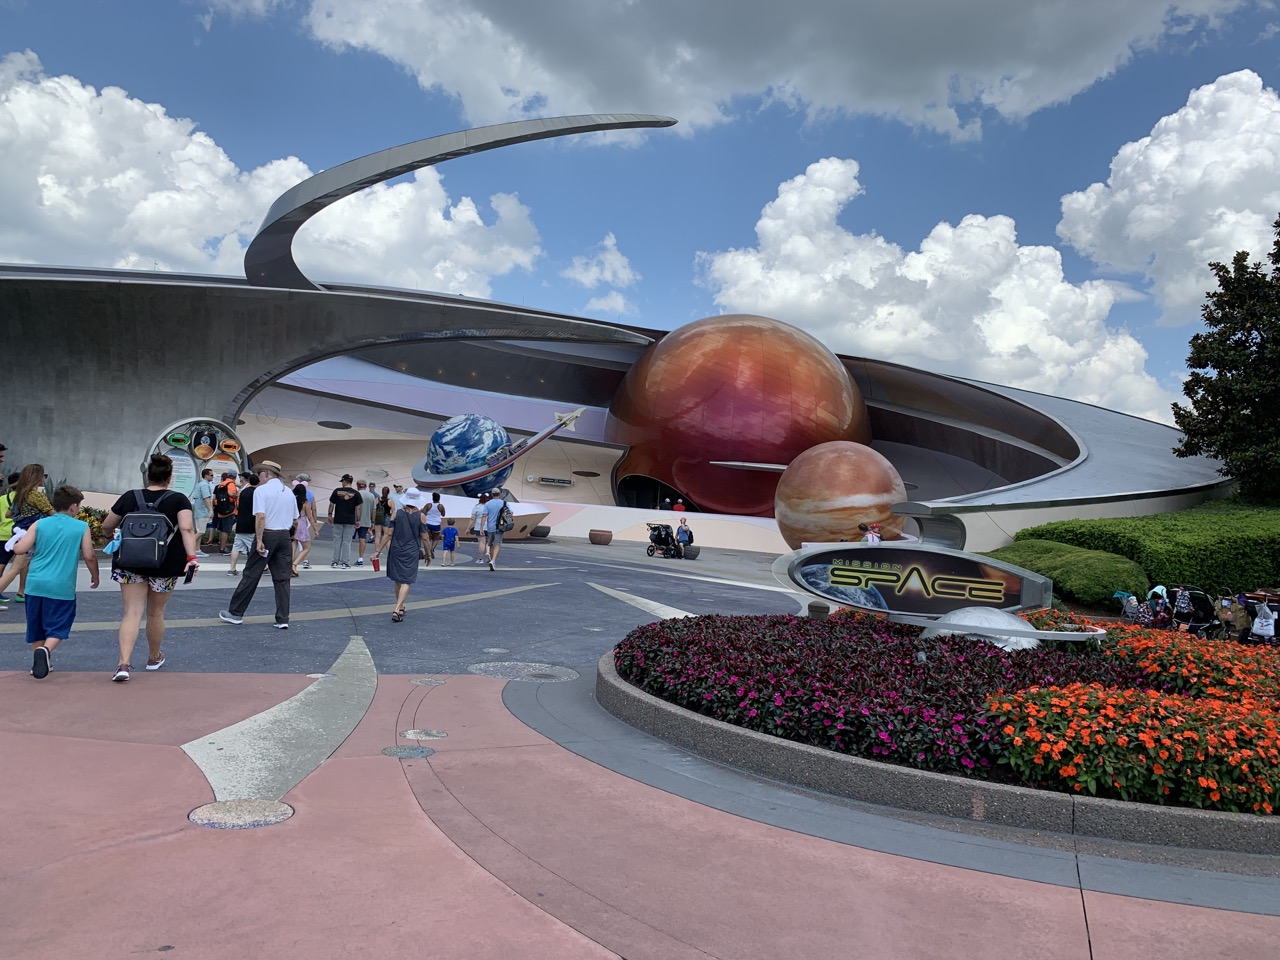 disney world trip report early summer 2019 day four 03 mission space.jpeg